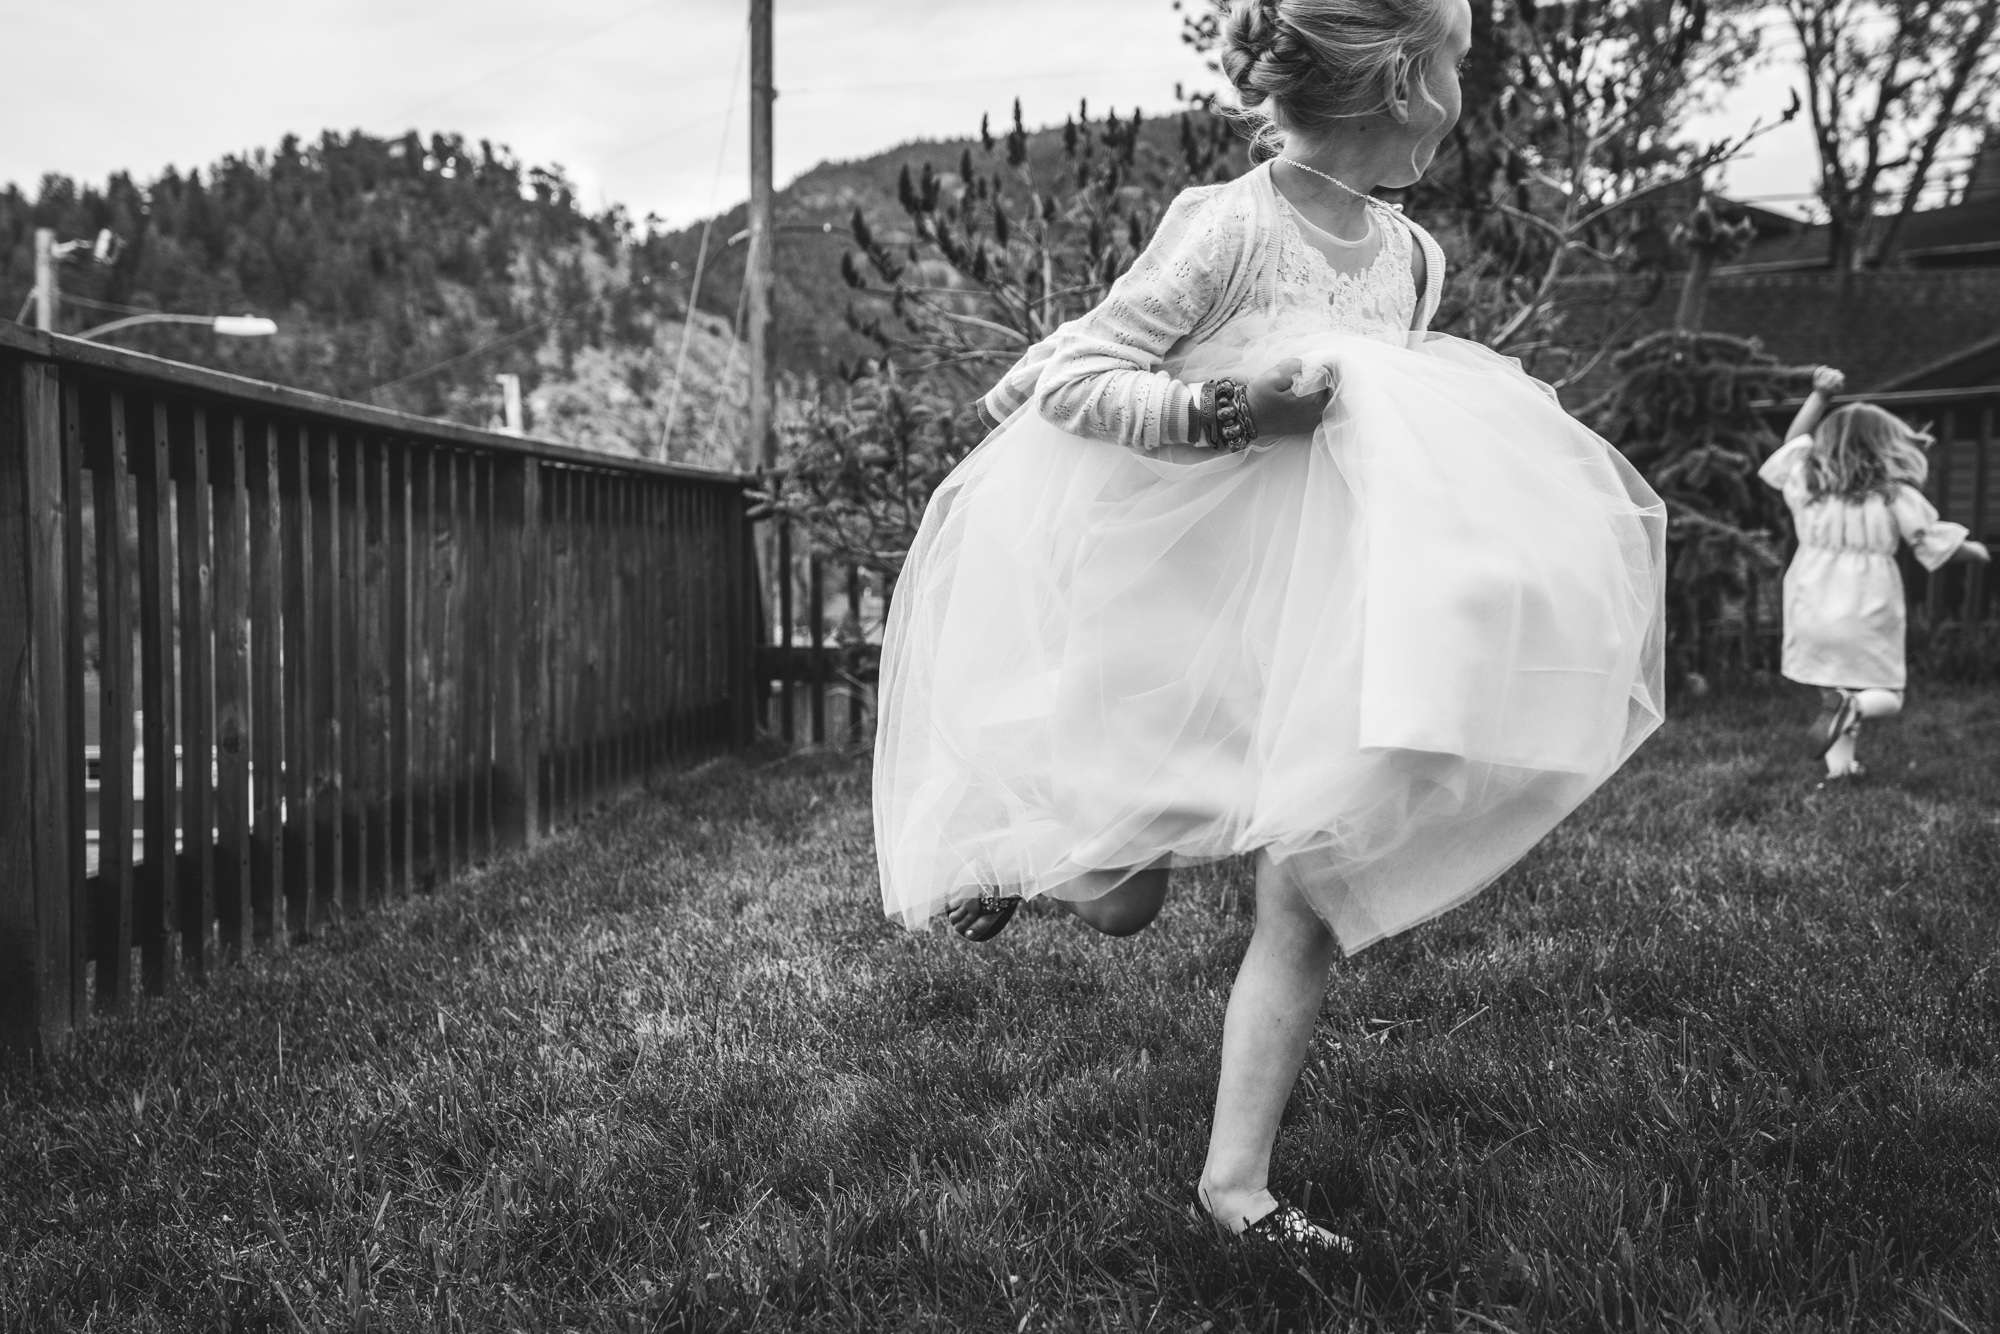 Black and white photo of a little girl in the foreground, running through the grass while wearing a white puffy dress while looking behind her at another little girl in a white dress running in the opposite direction. The mountains can be seen in the background.